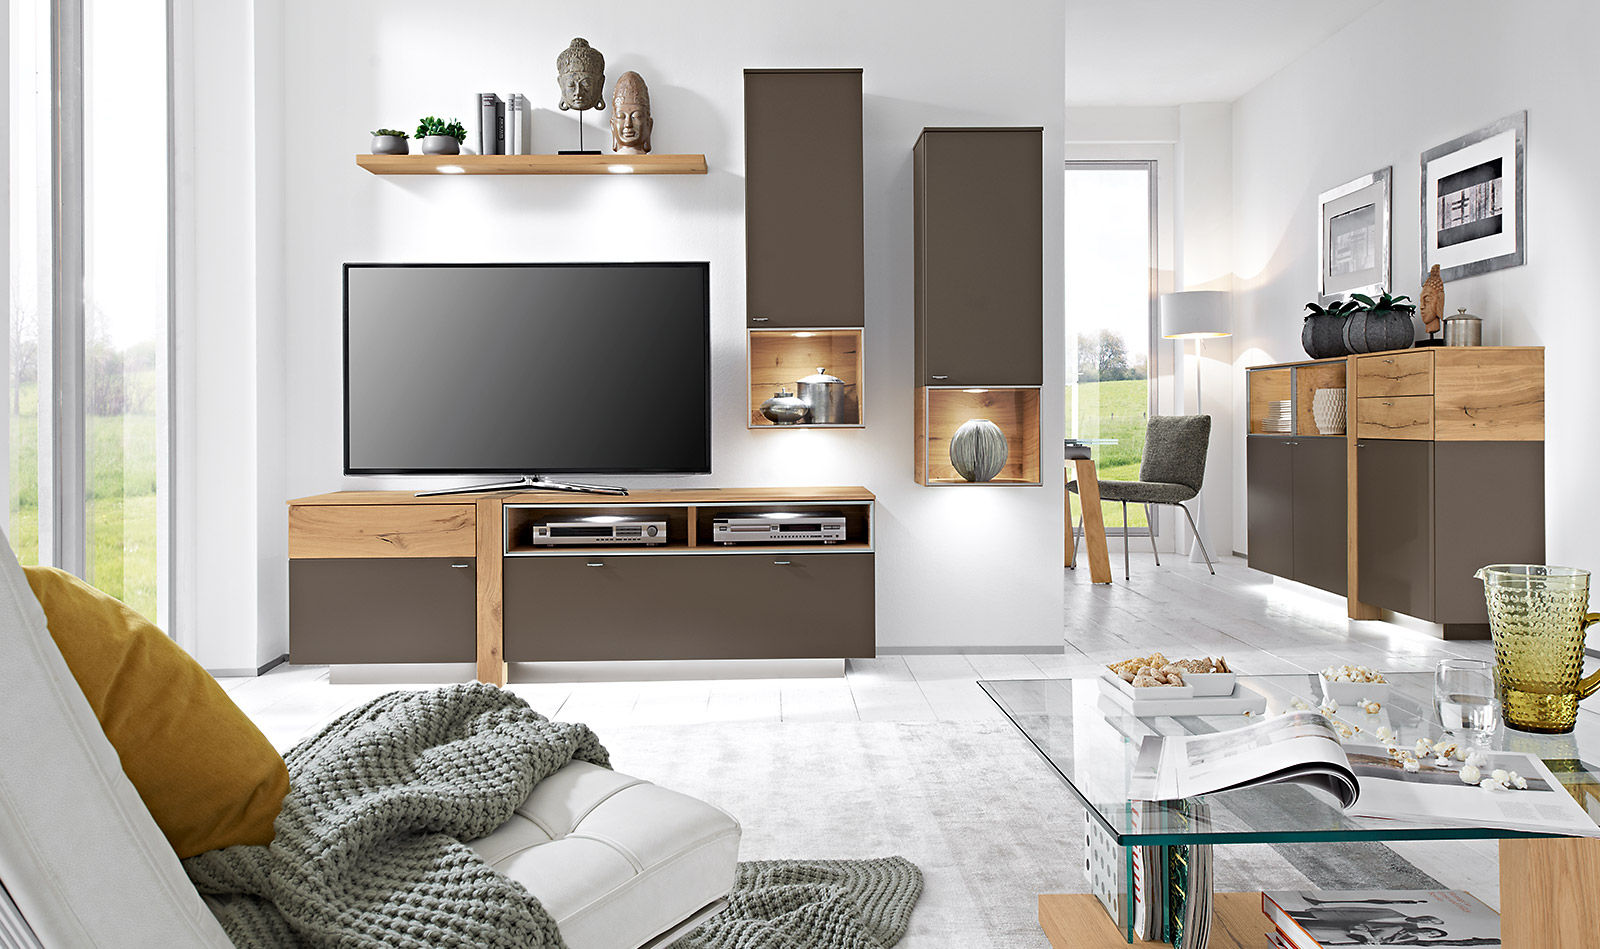 wohnzimmer programme albero venjakob m bel vorsprung durch design und qualit t. Black Bedroom Furniture Sets. Home Design Ideas